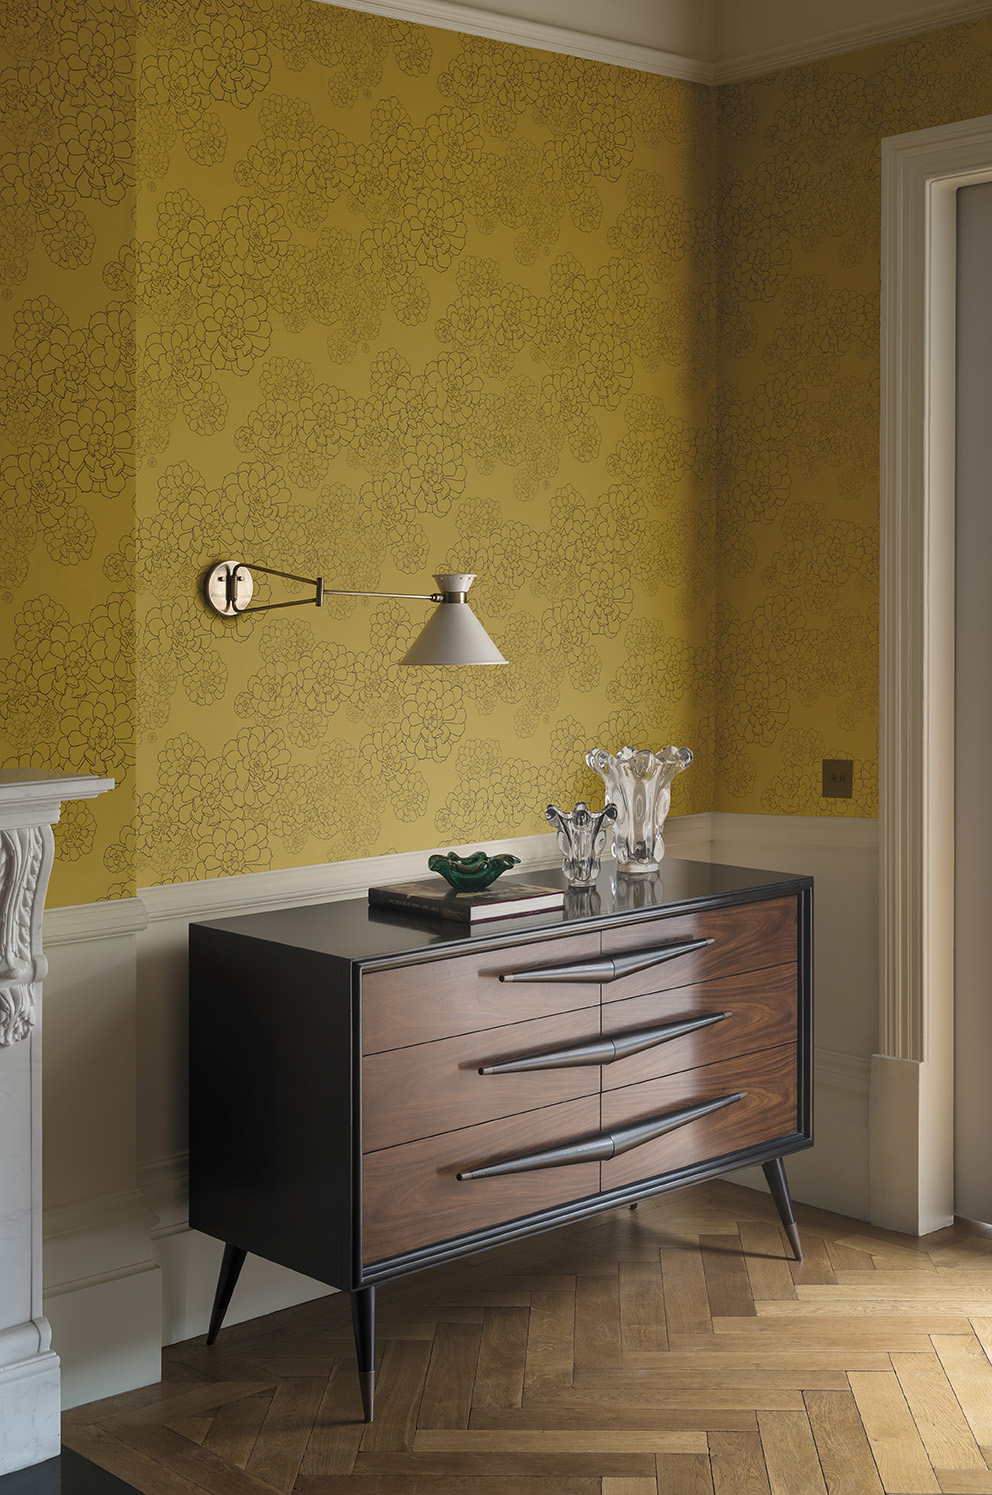 'Tresco' in collaboration with Hugo Dalton by Paint & Paper Library; Wallpaper: Aeonium – Gamboge; Paint: All Woodwork & Panelling in Ivory II 462 in Architects' Eggshell.